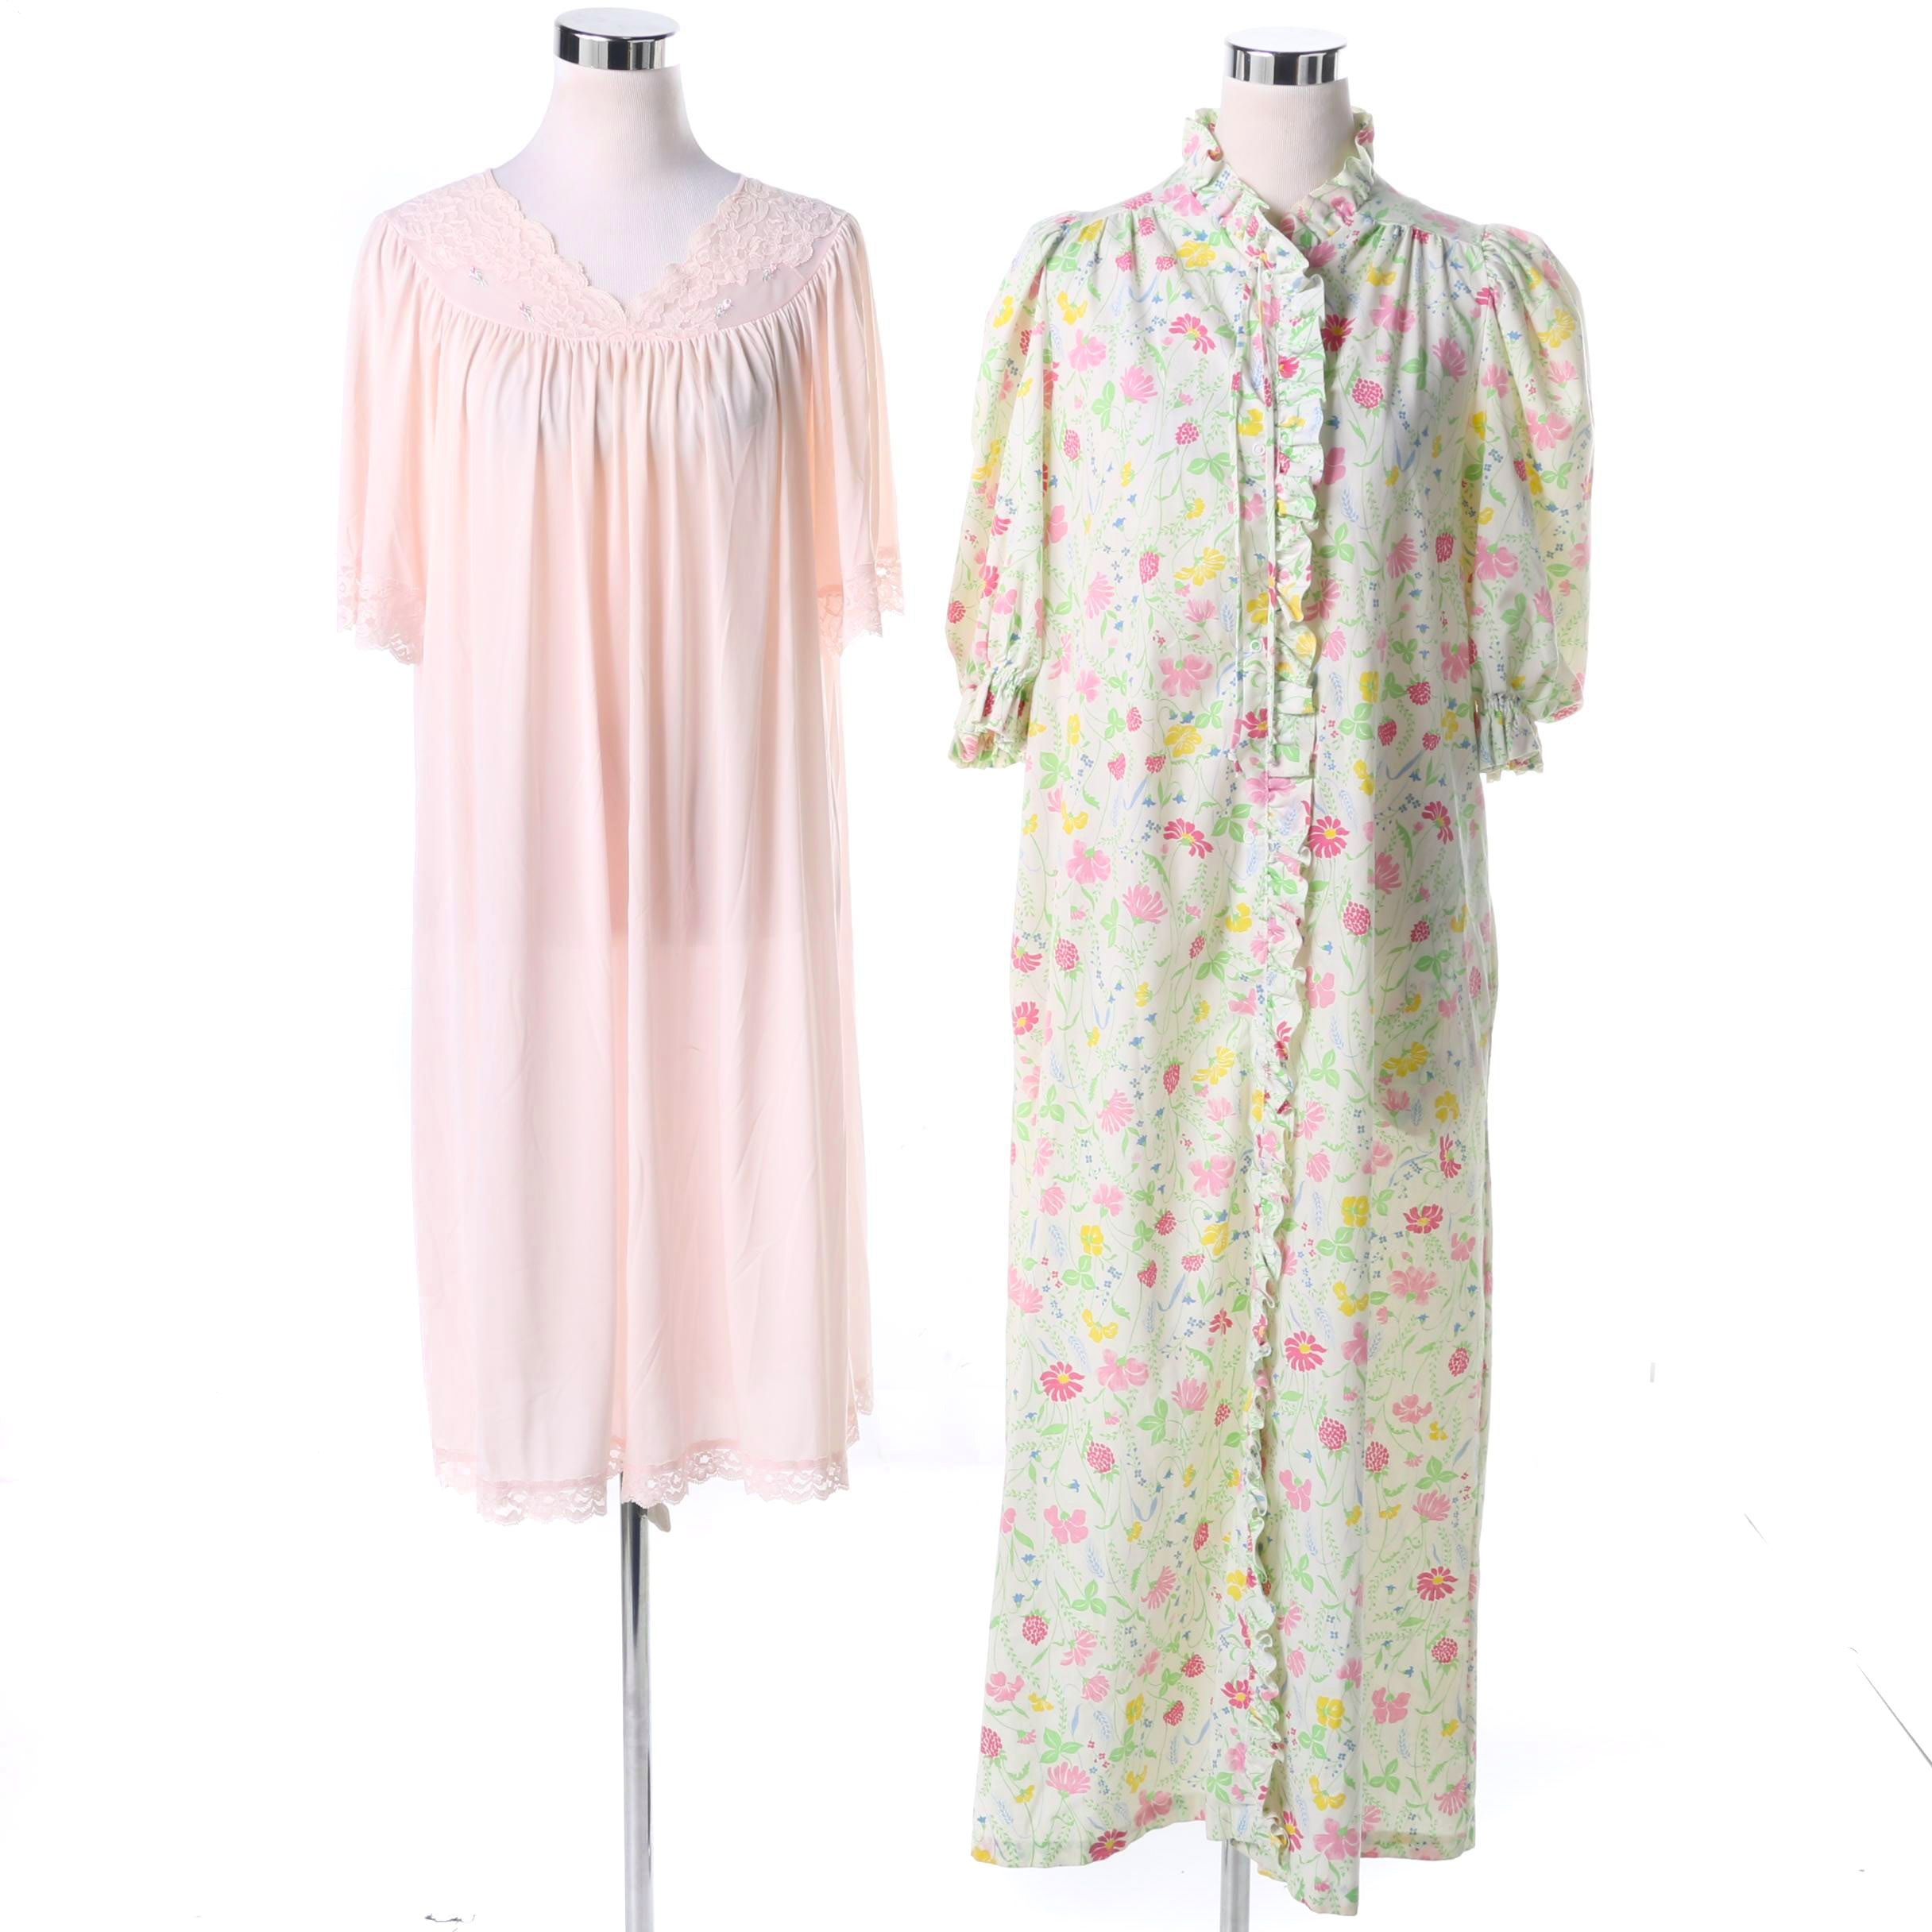 Pair of Women's Vintage Nightgowns